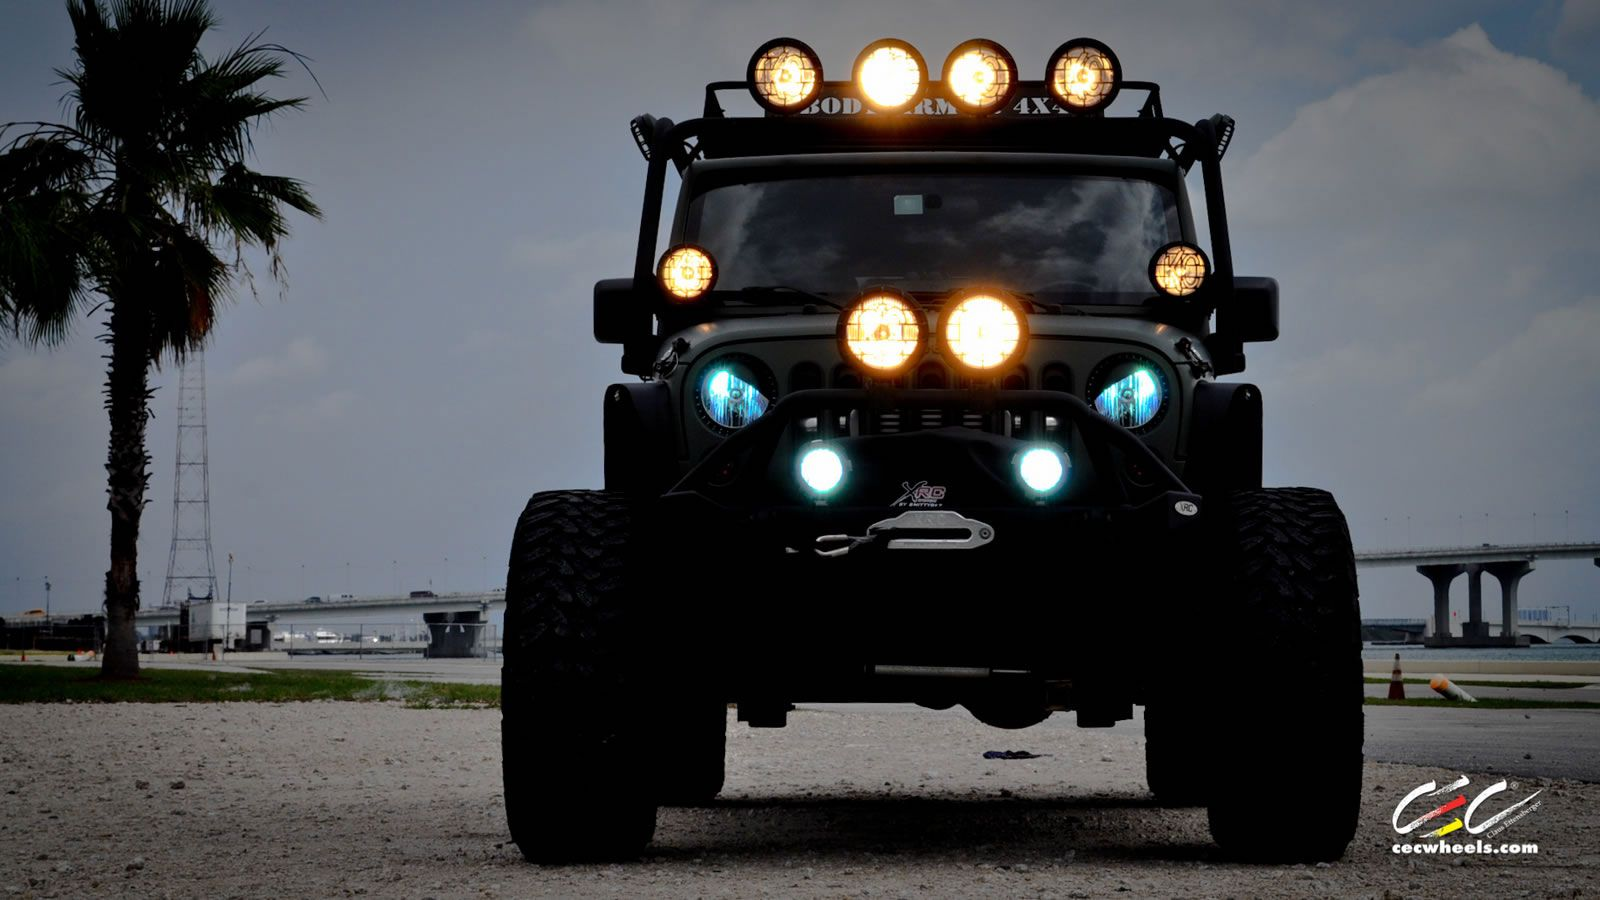 Hd wallpaper jeep - Cec Wheels Miami Supercharged Jeep Wrangler Wallpaper Front View